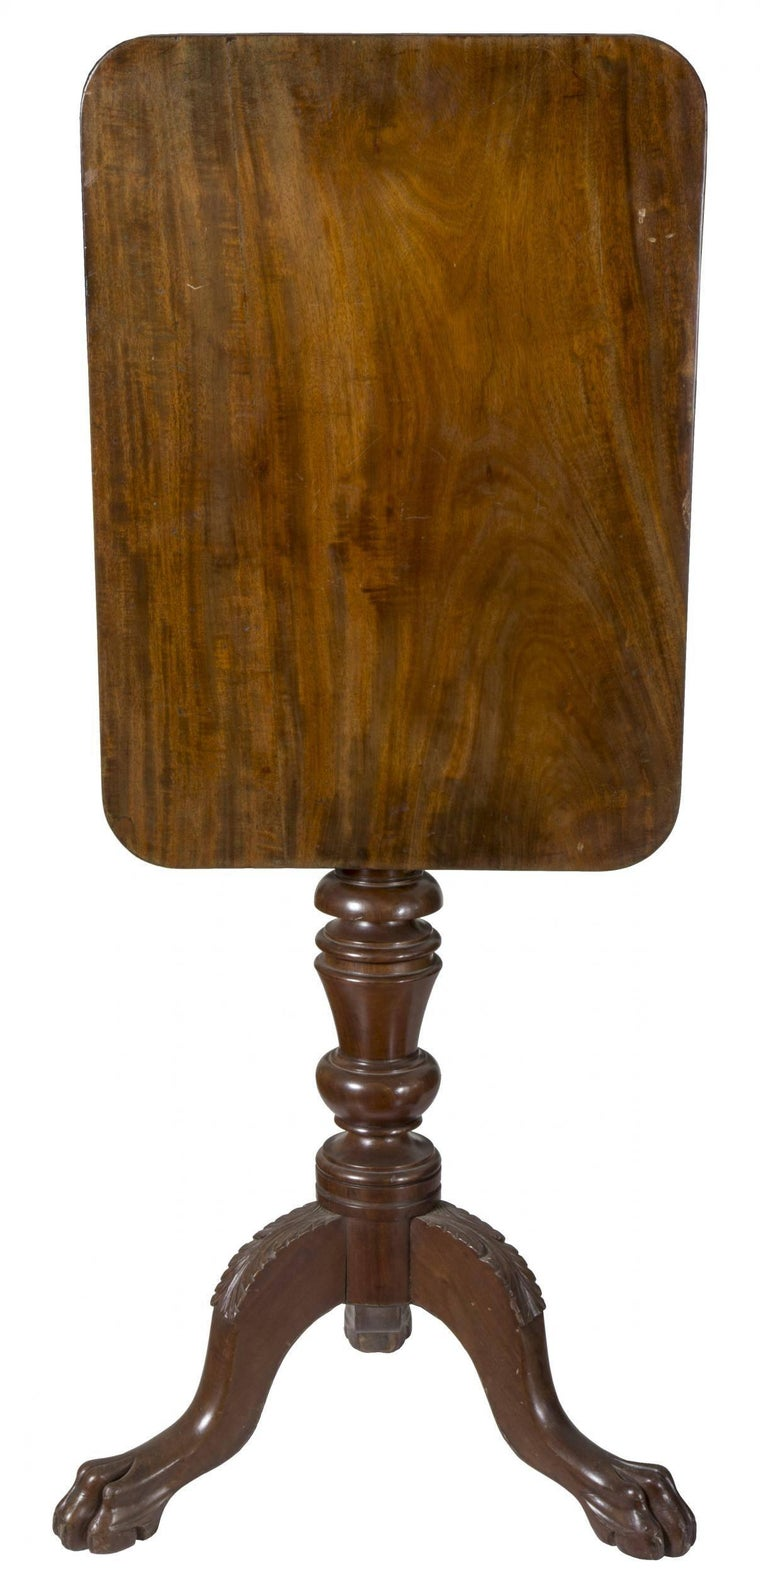 American Classical Mahogany Classical Candle Stand, American, circa 1820 For Sale